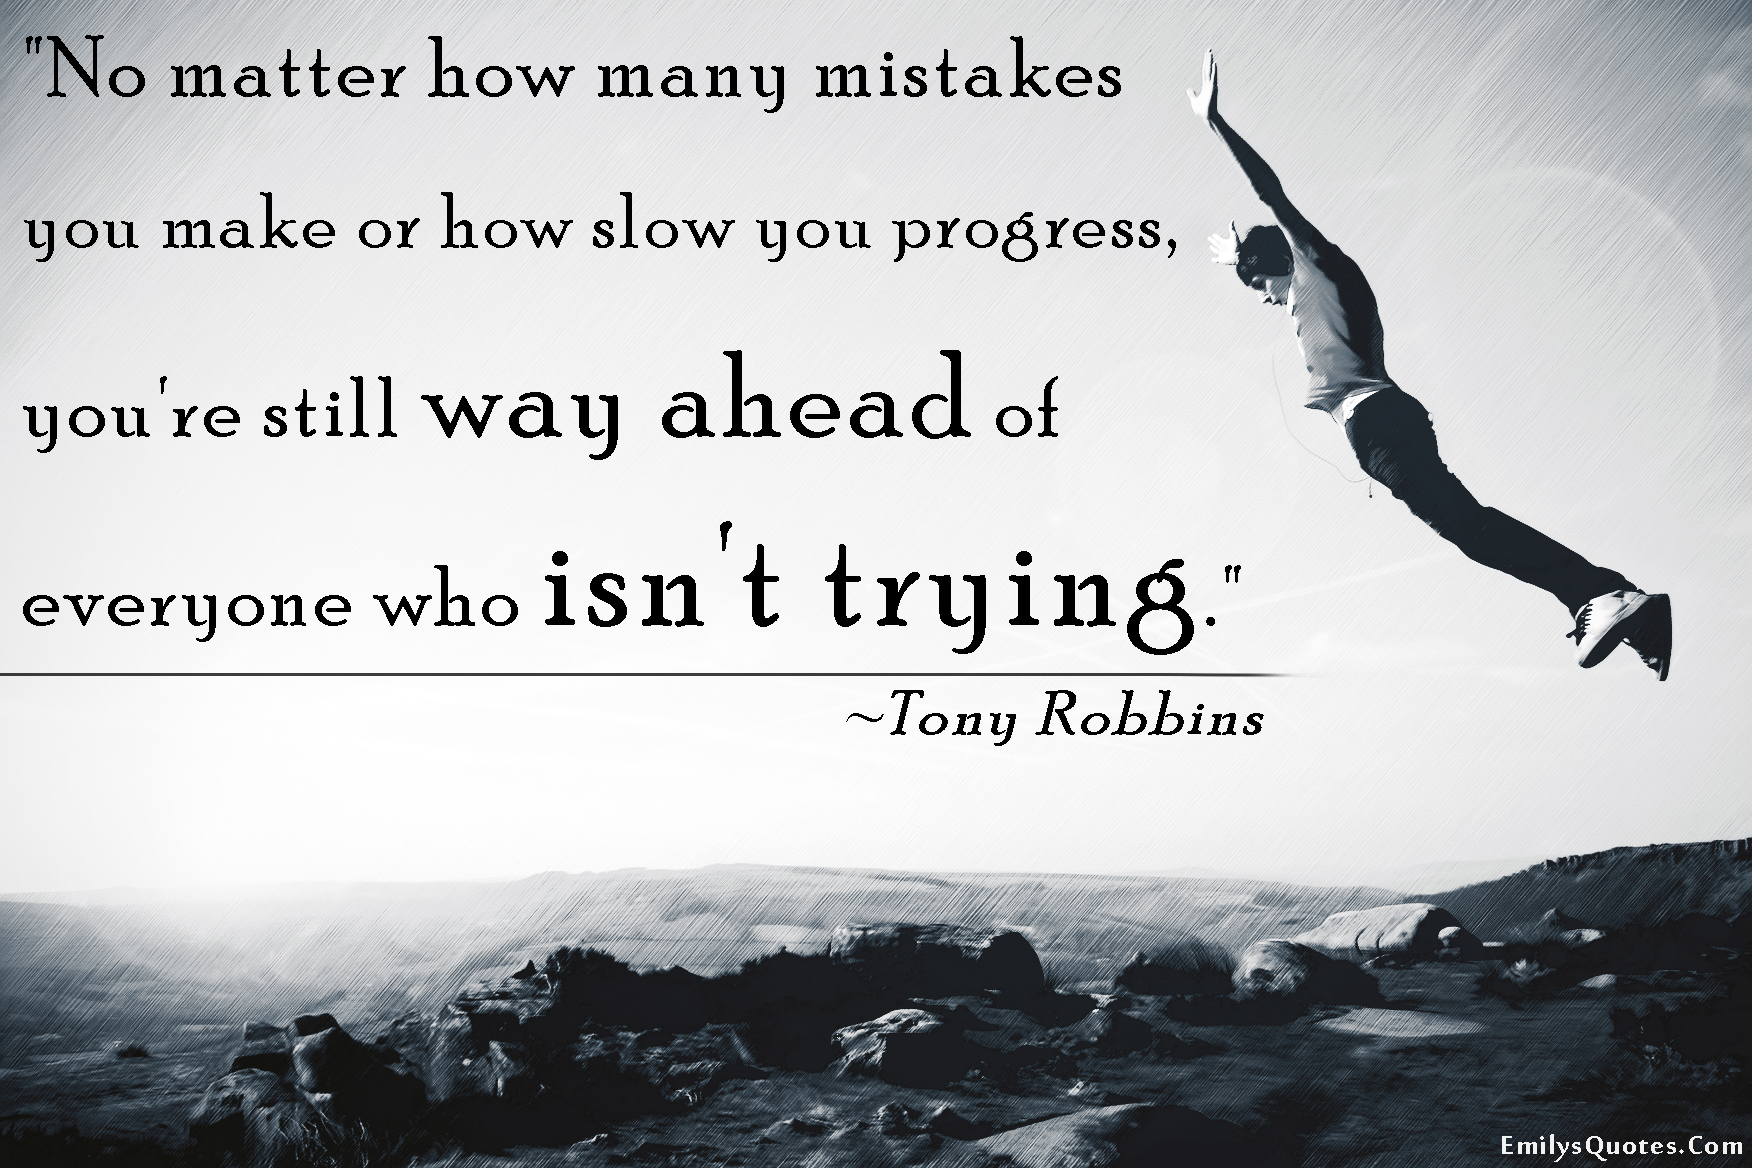 EmilysQuotes.Com - mistakes, progress, slow, trying, Tony Robbins, inspirational, motivational